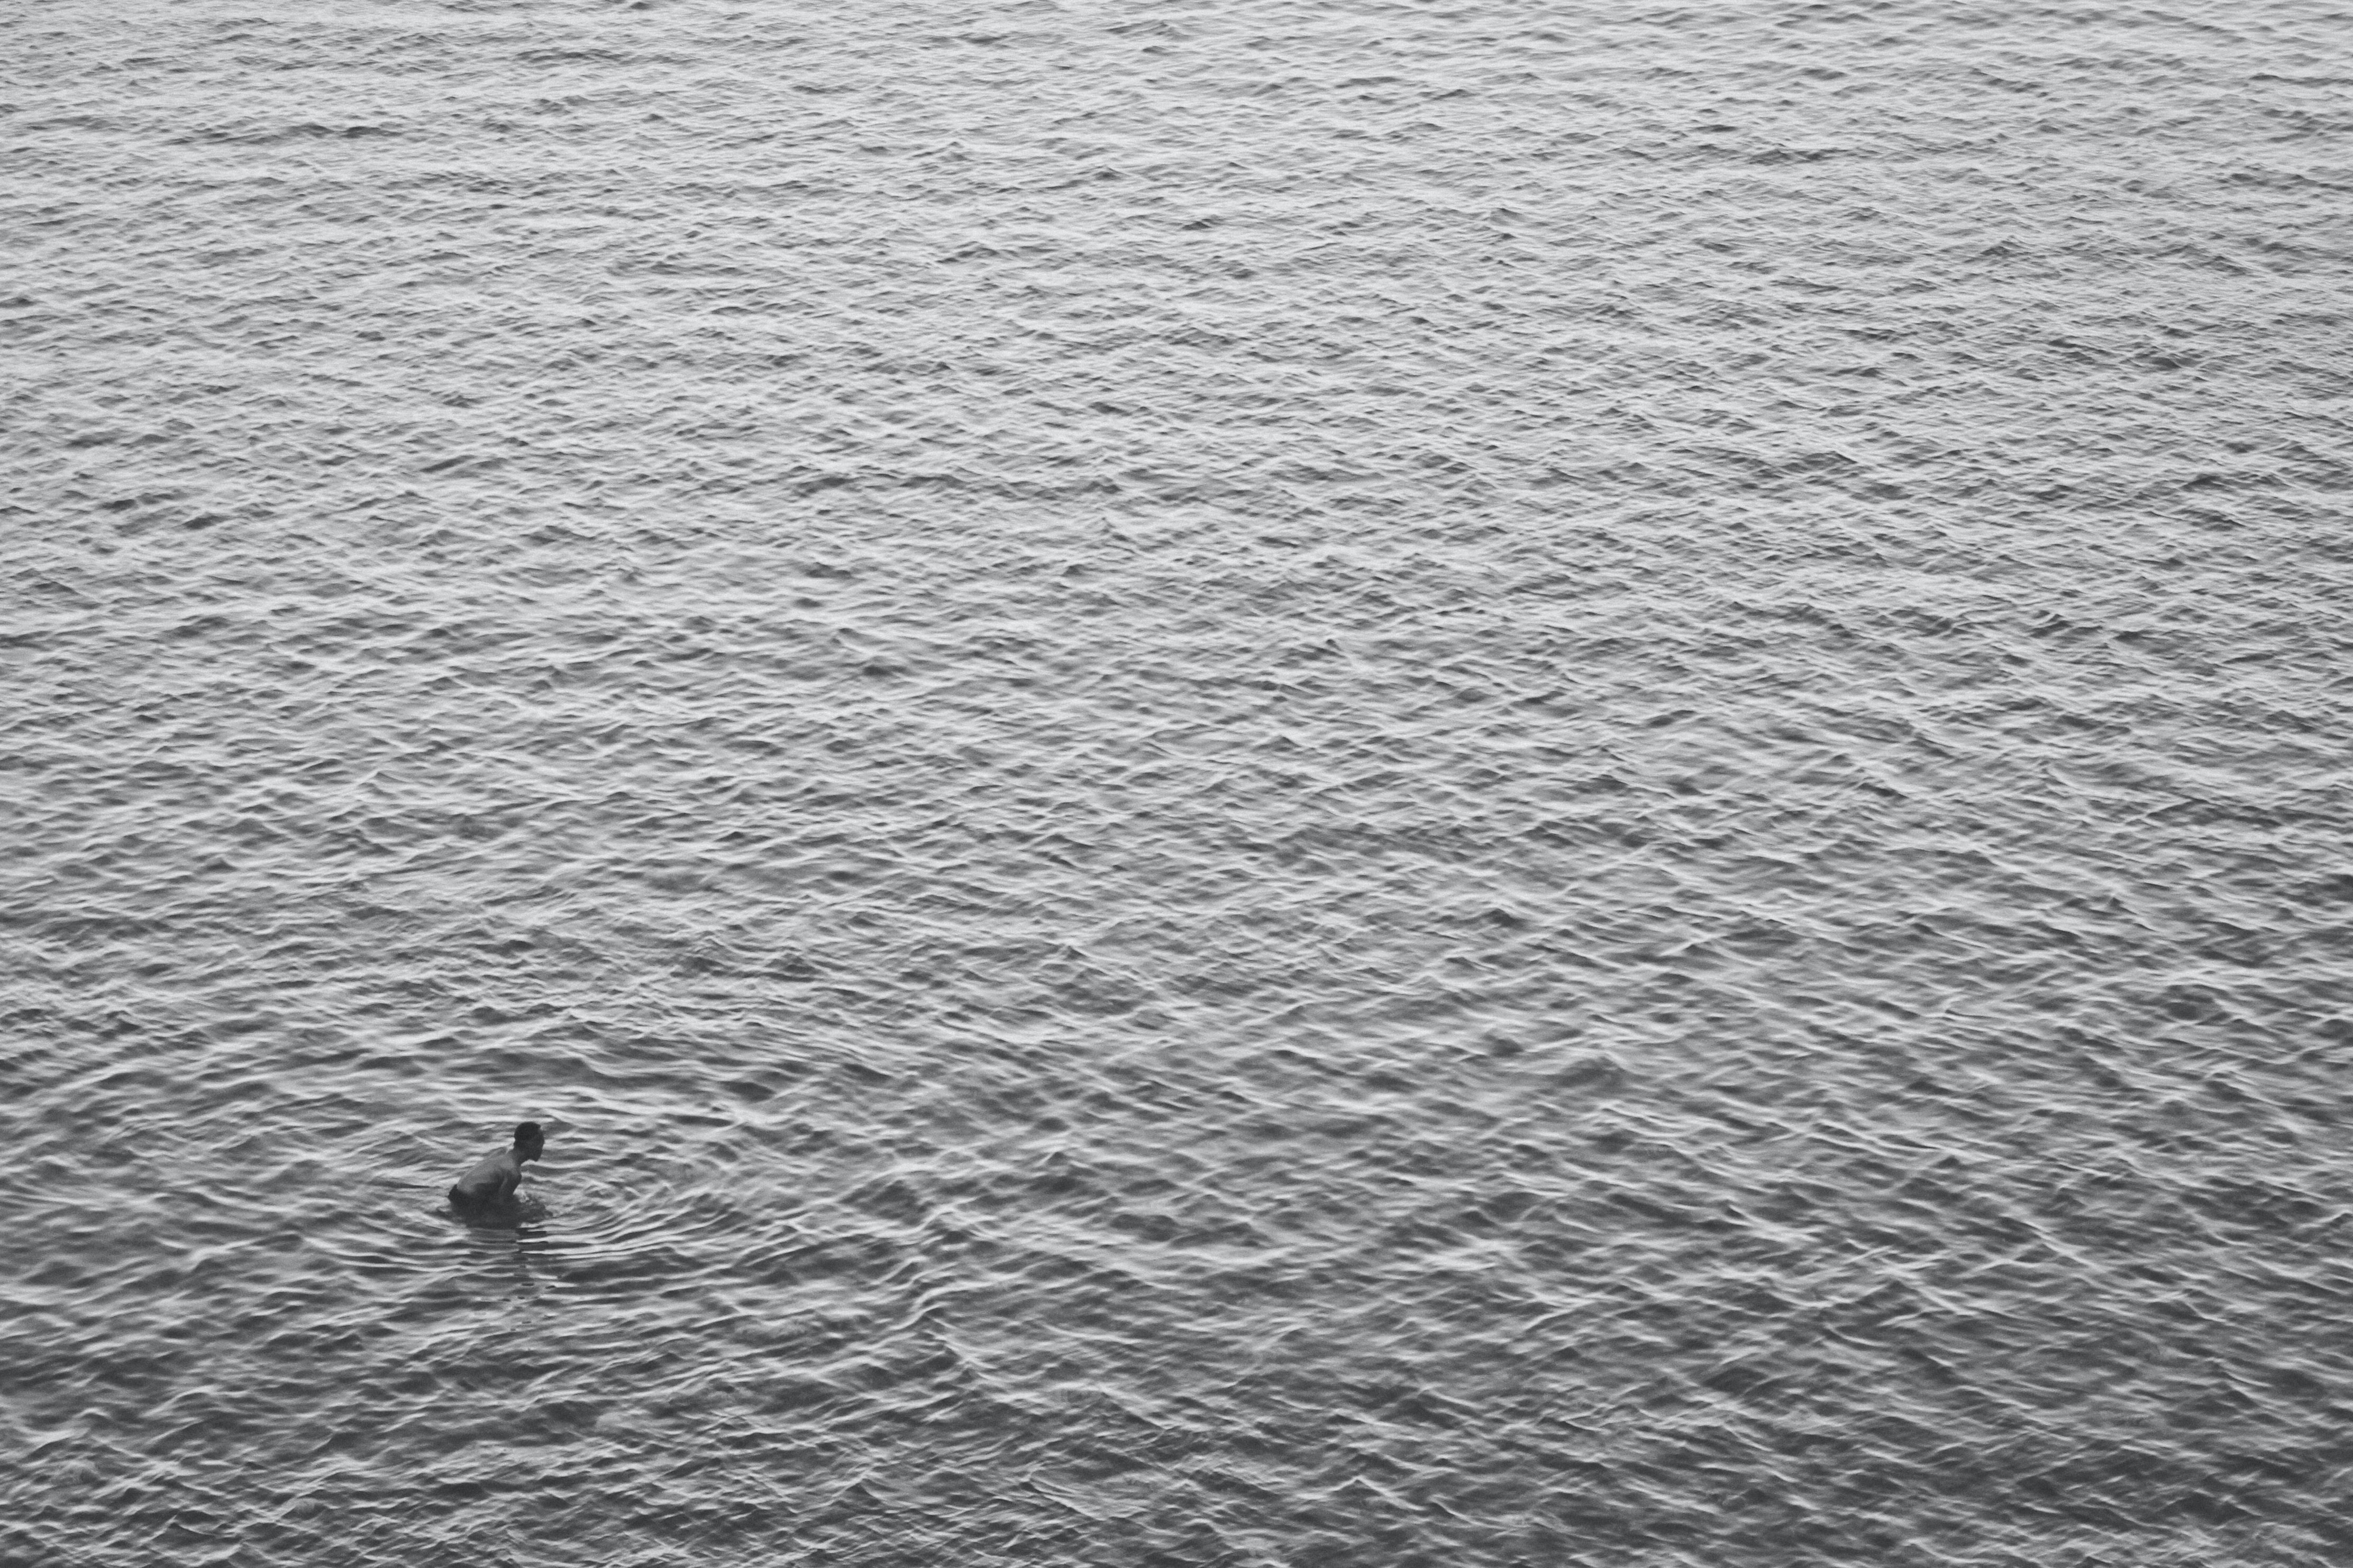 aerial view photography of person in ocean during daytime